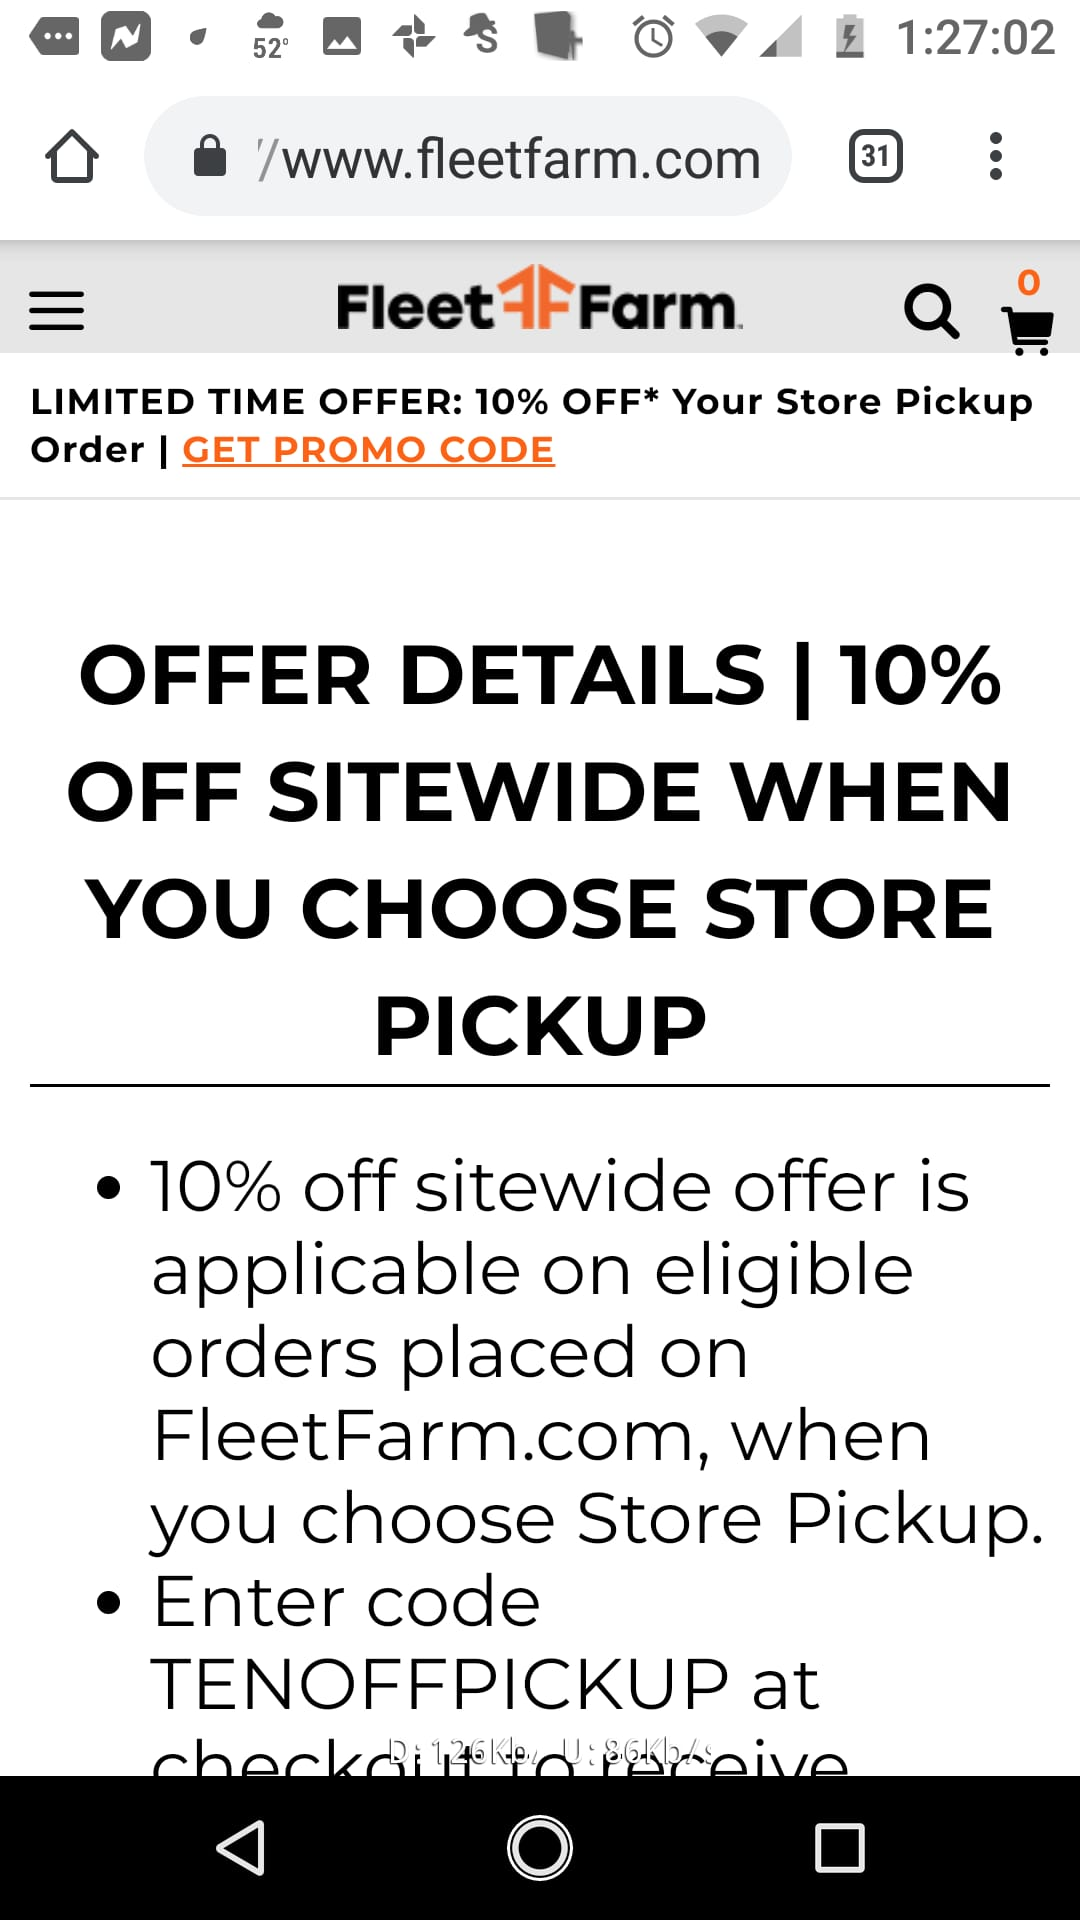 Fleet Farm: 10% off sitewide when you choose store pickup